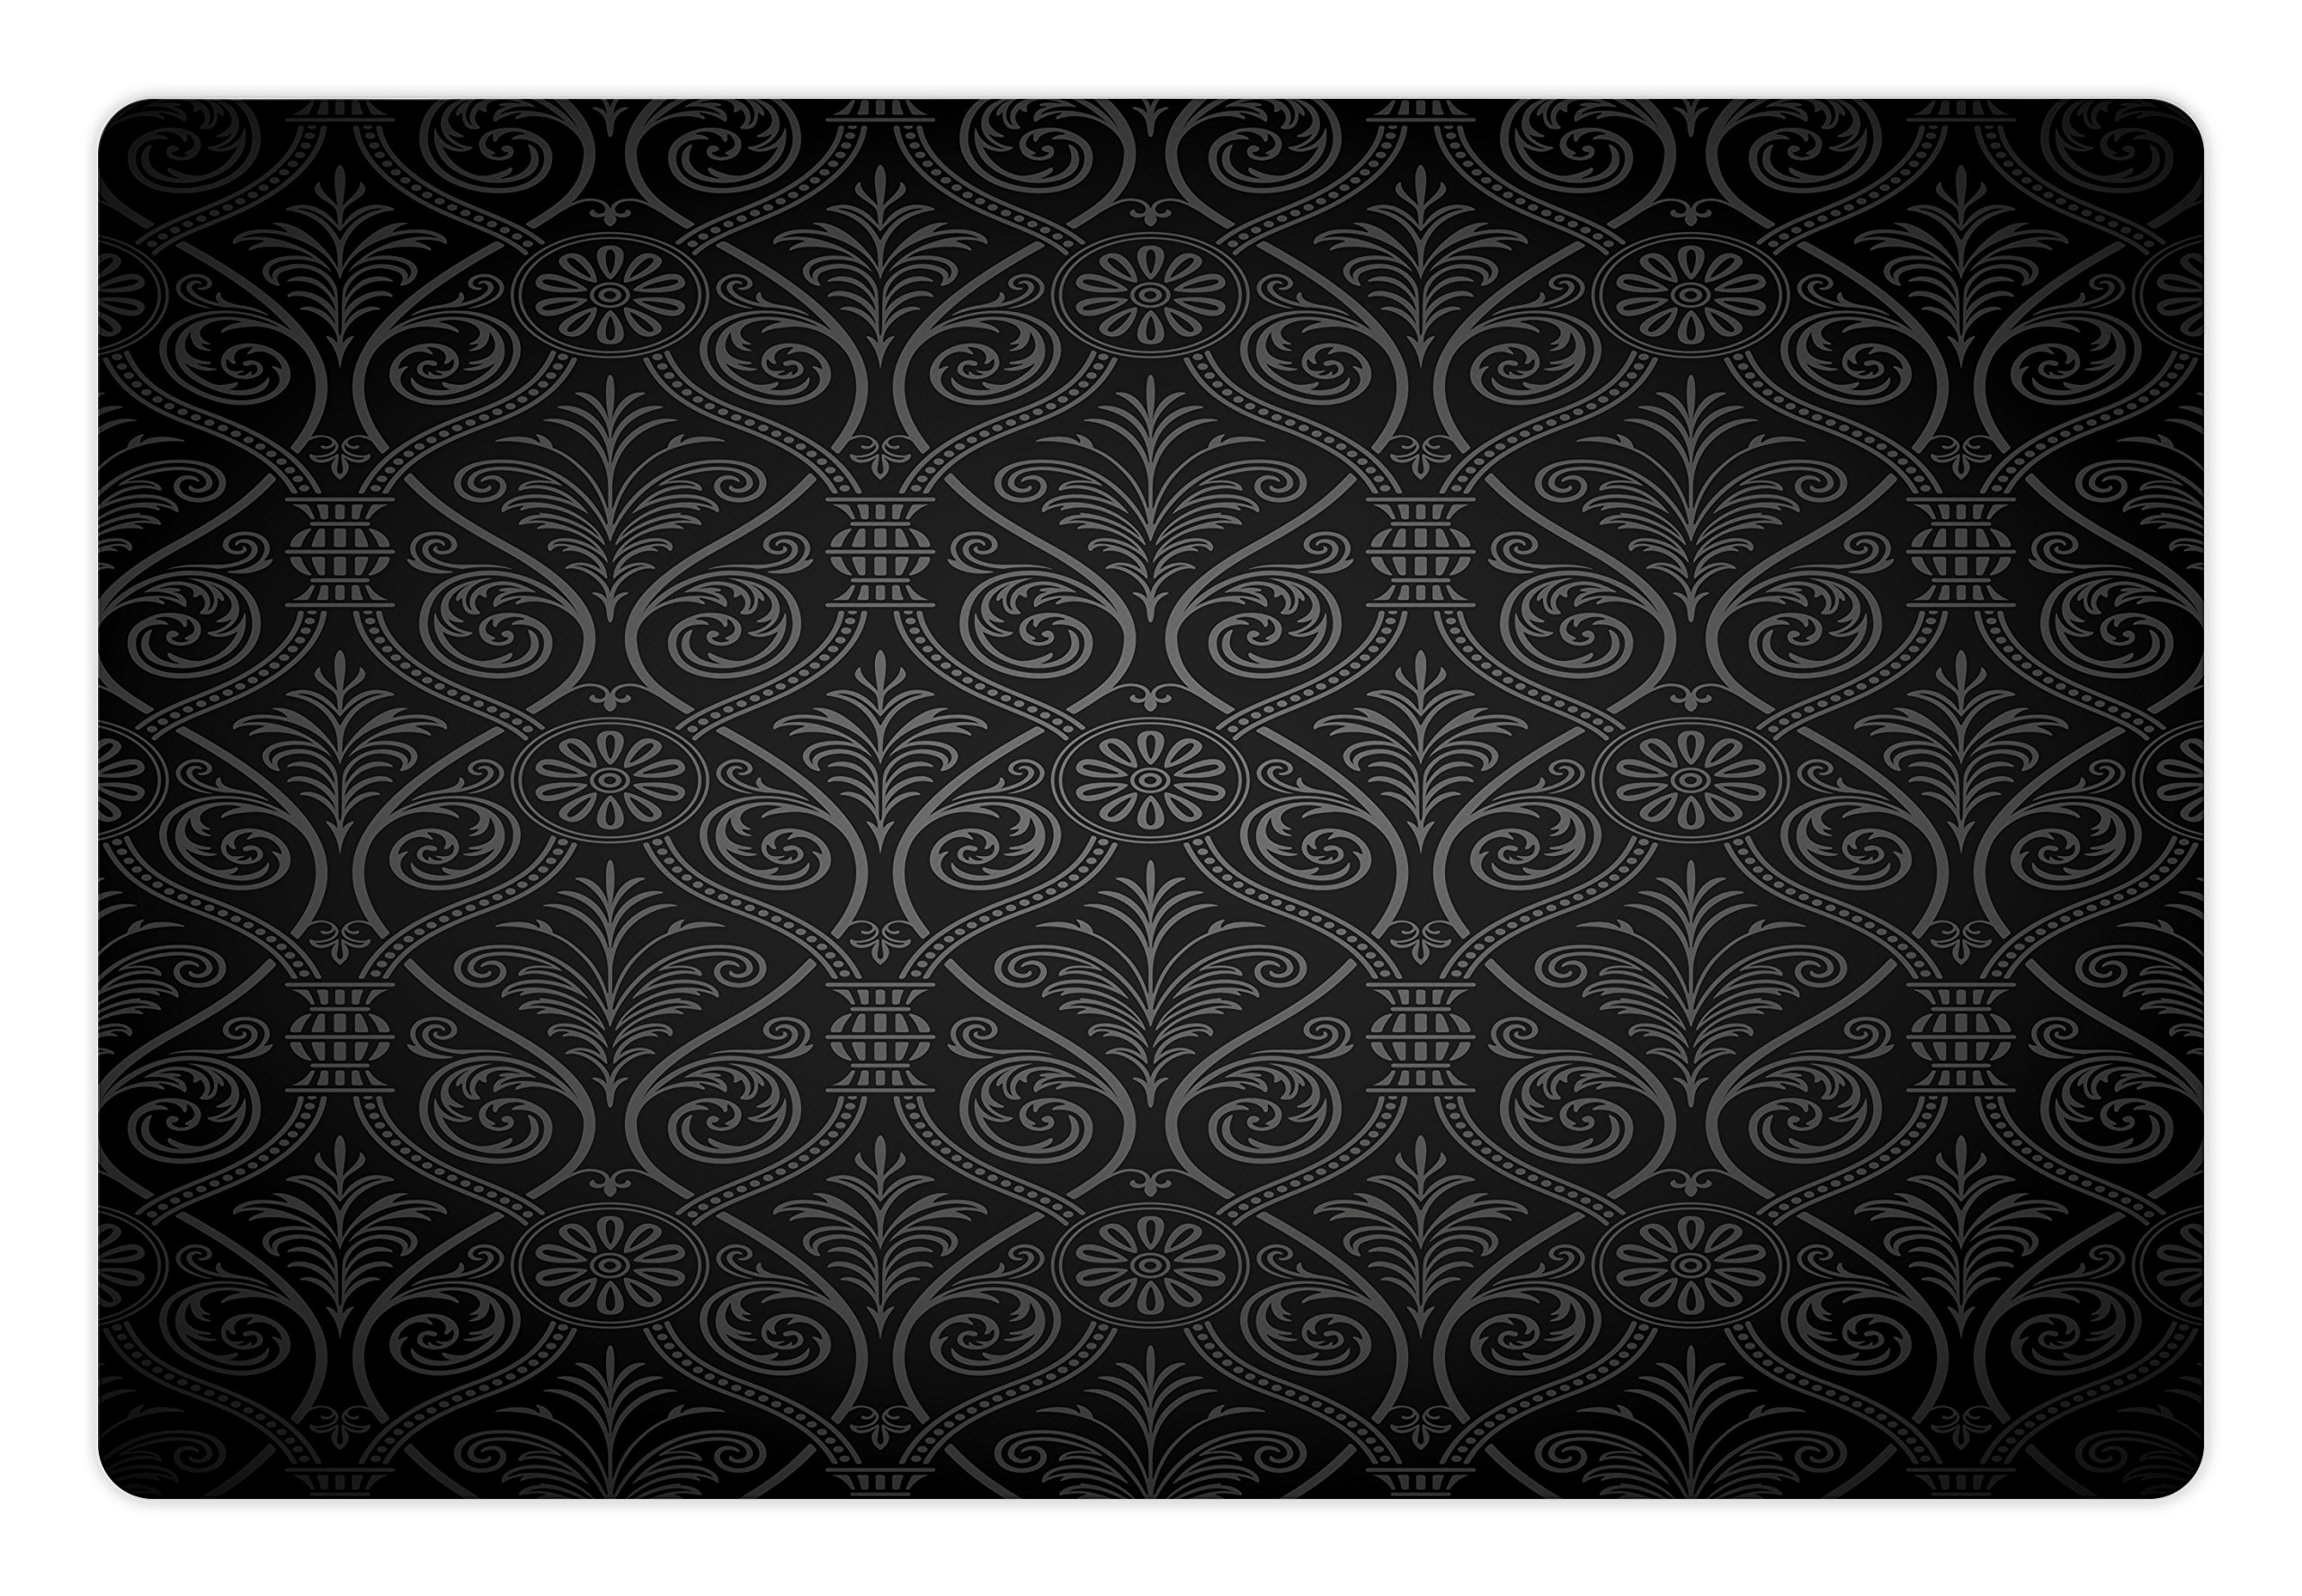 Lunarable Damask Pet Mats for Food and Water by, Antique Baroque Pattern with Mild Ombre Shade Gothic Victorian Venetian Style, Rectangle Non-Slip Rubber Mat for Dogs and Cats, Charcoal Grey